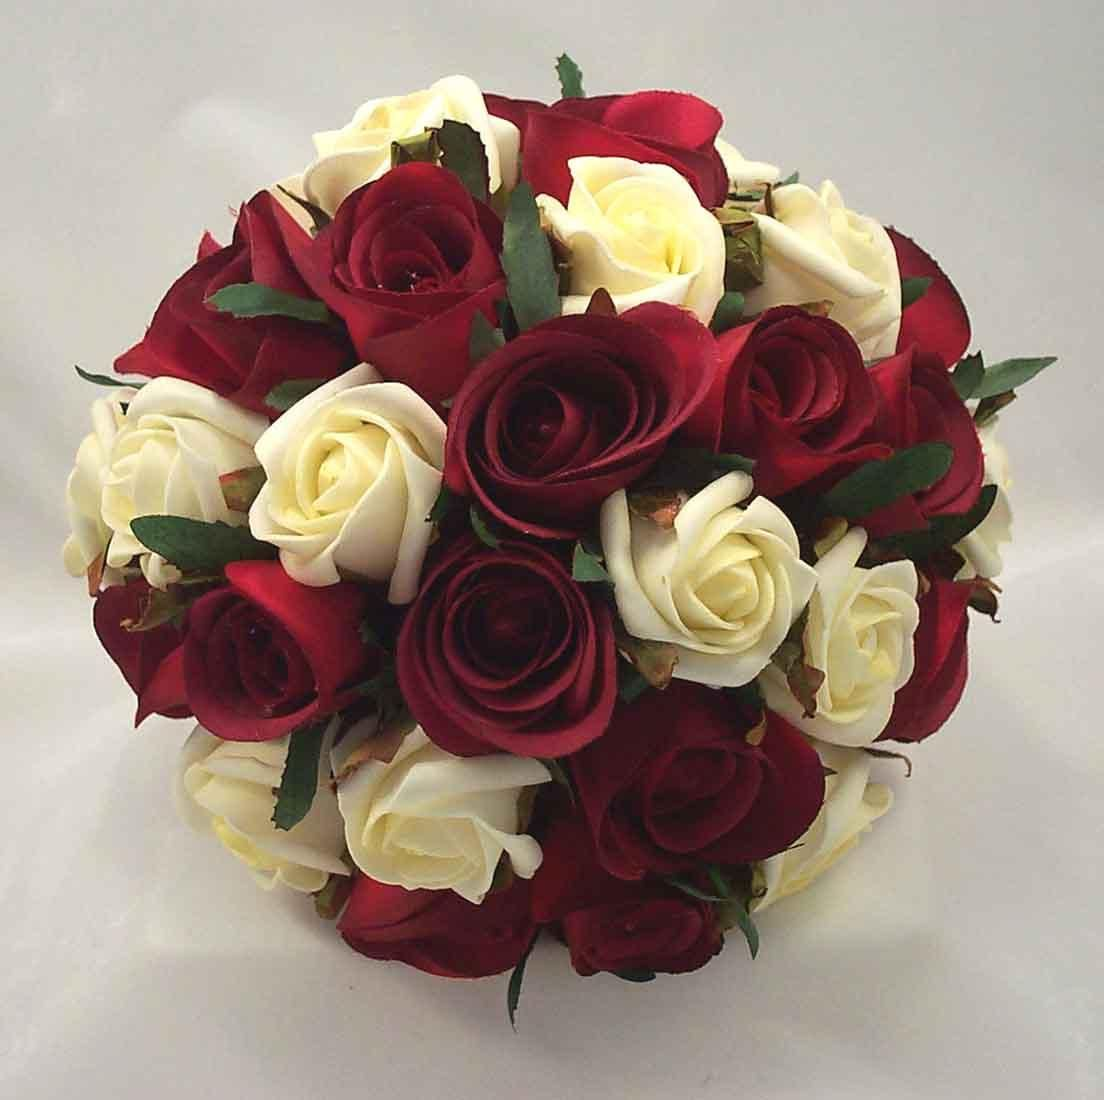 Burgundy ivory rose bouquet wedding flowers bridal ivory rose burgundy ivory rose bouquet wedding flowers bridal dhlflorist Choice Image